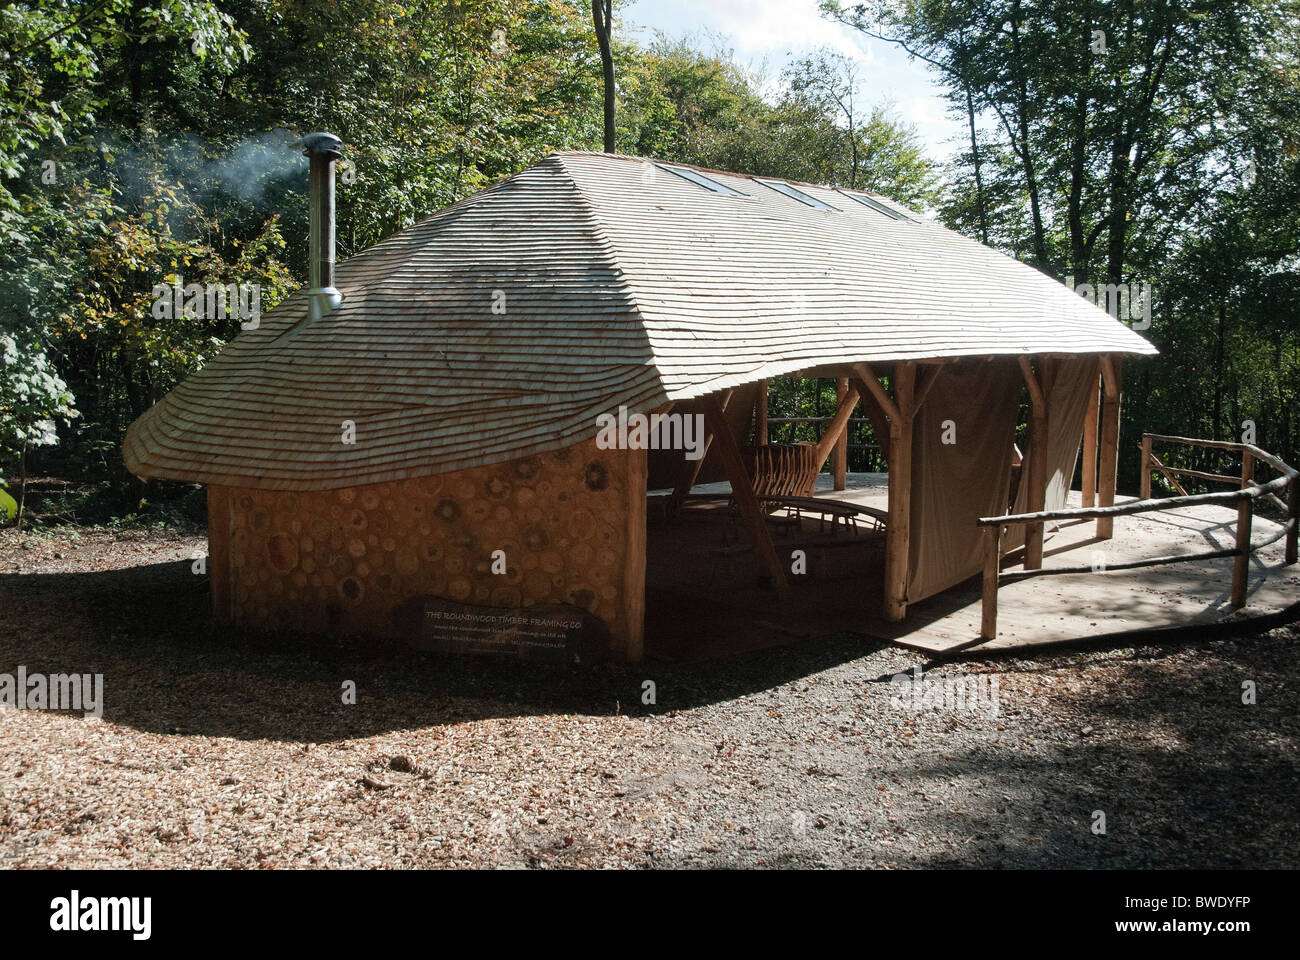 Ben Law's outdoor wooden classroom at the East Meon permaculture centre - Stock Image